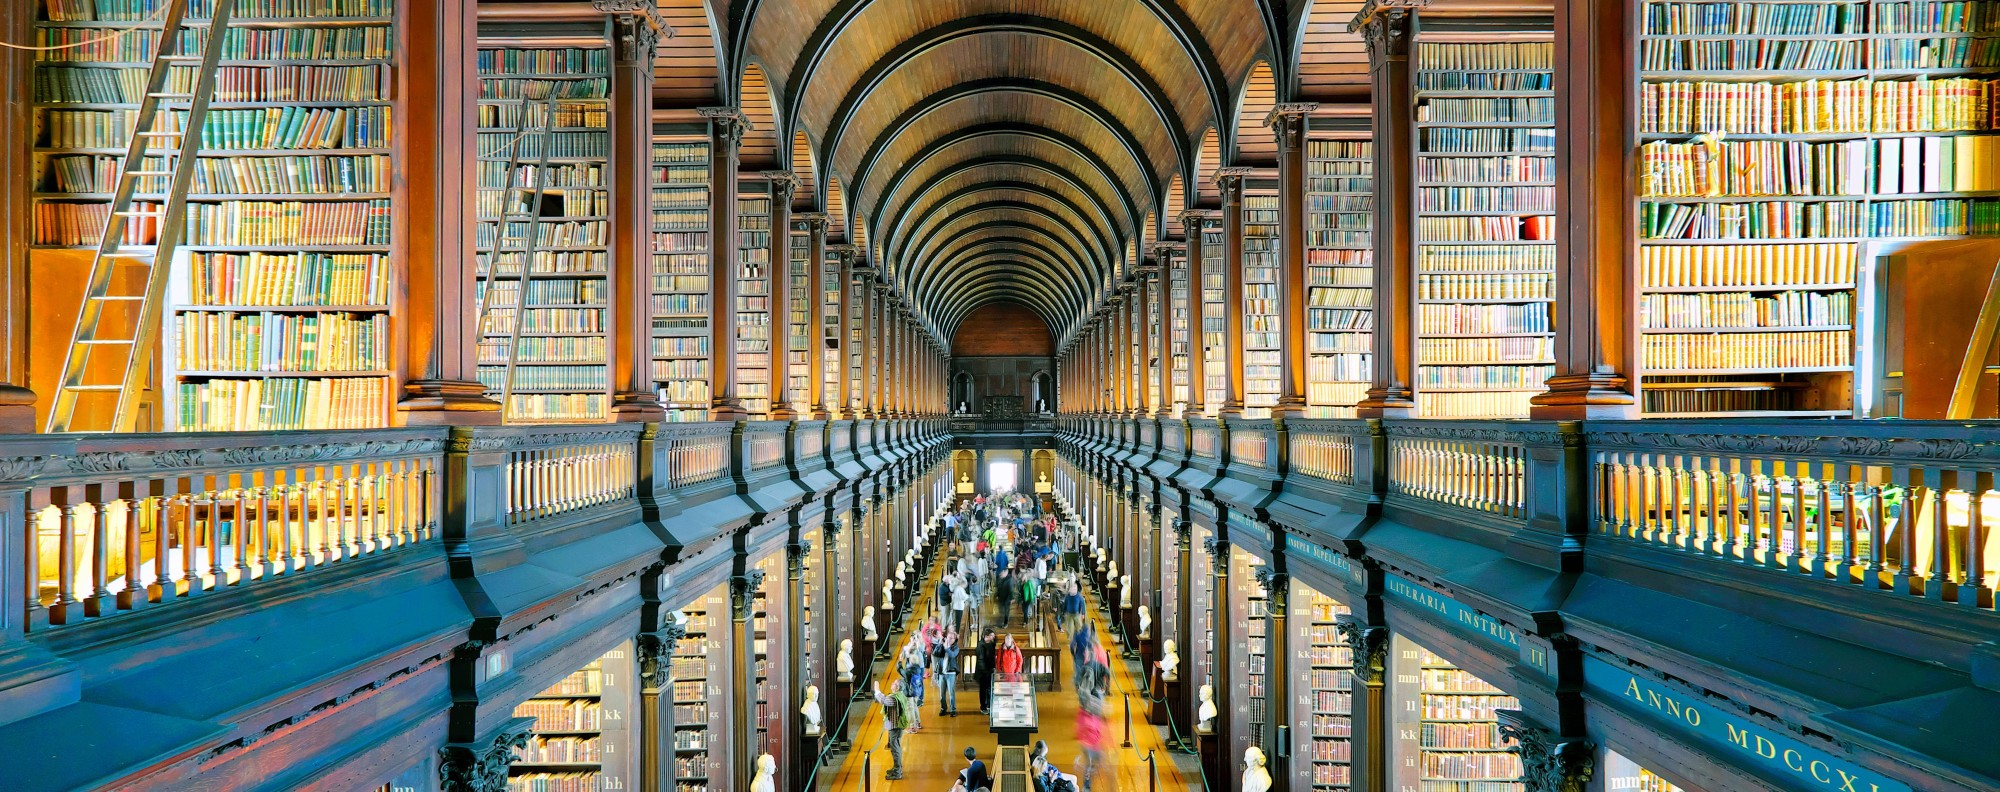 The Old Library in Dublin's Trinity College.